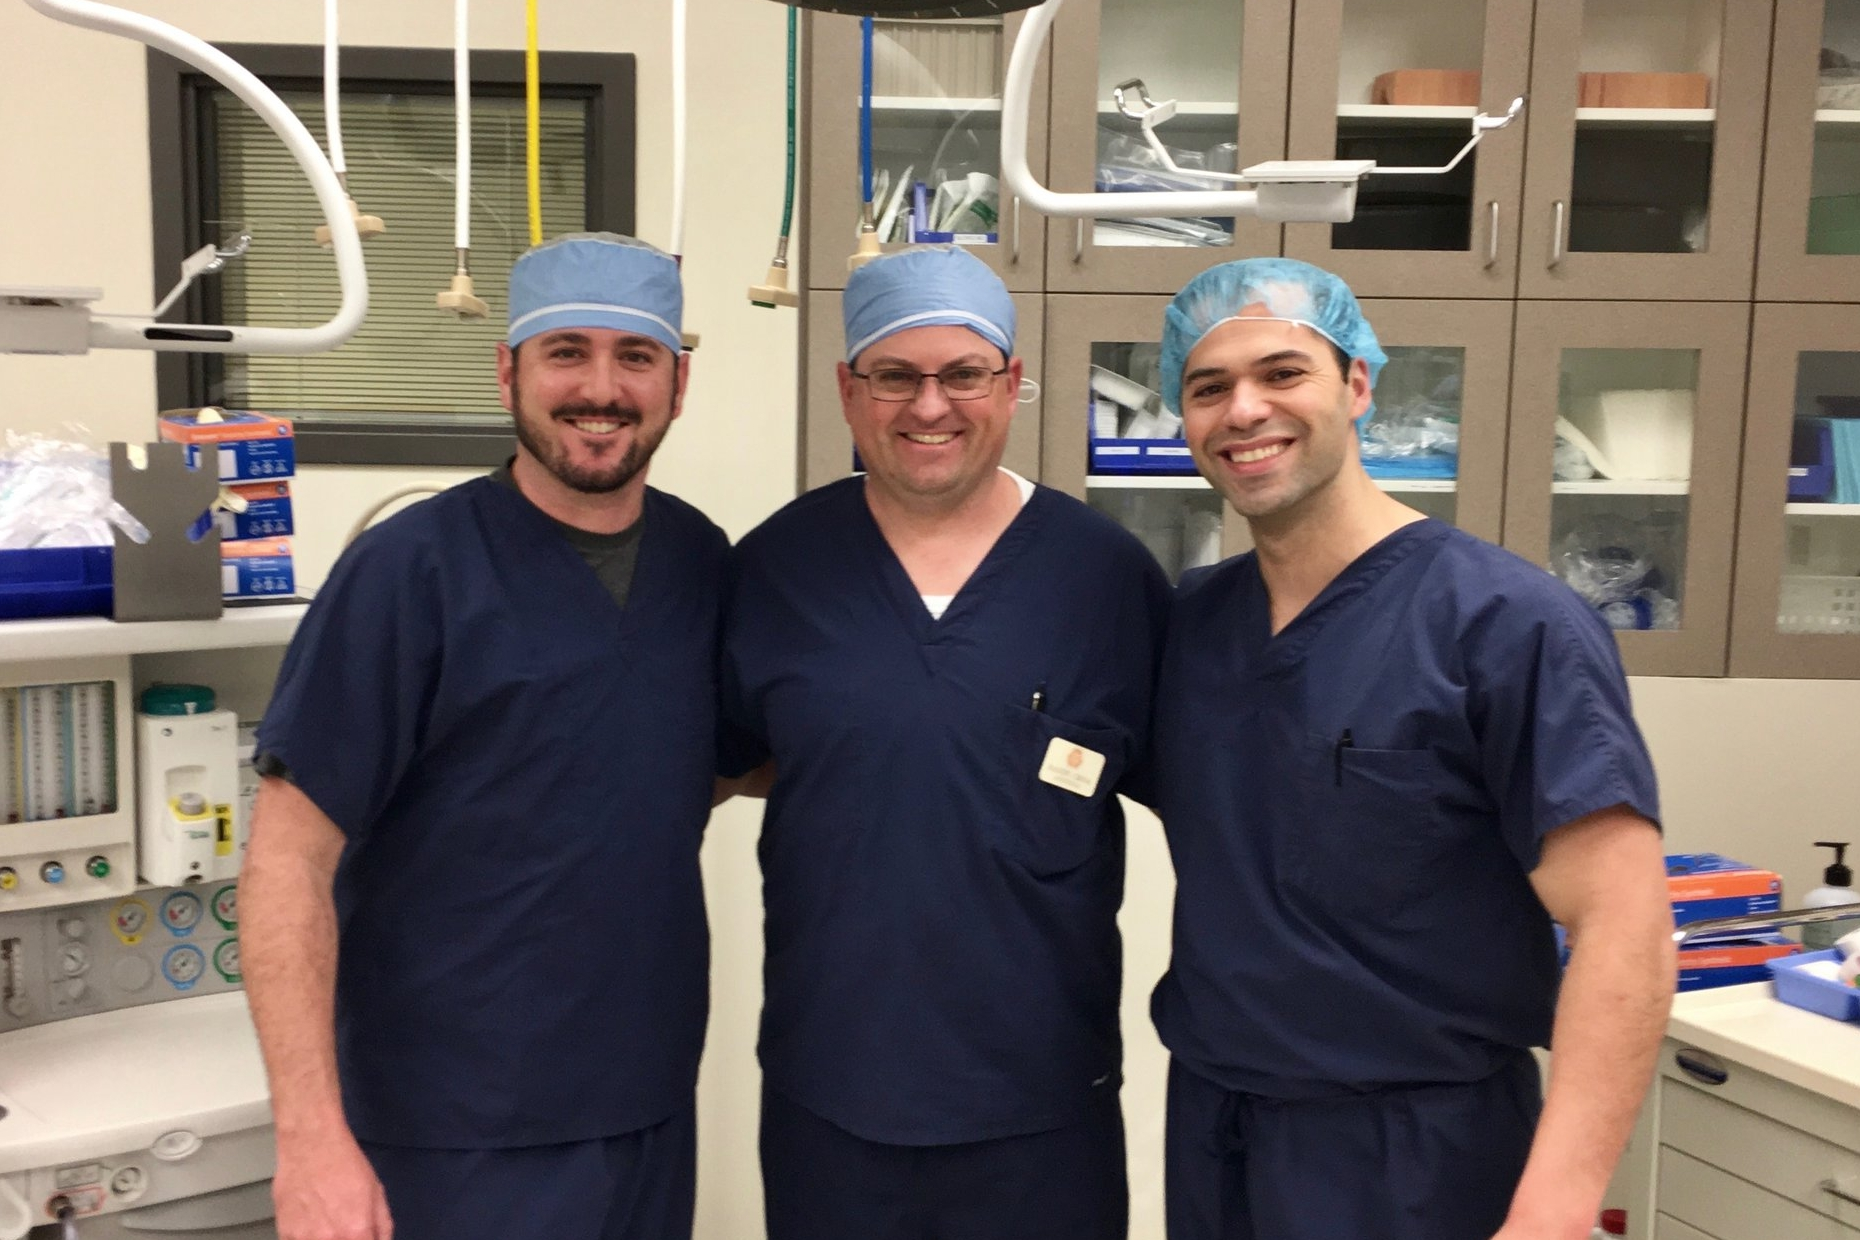 AzAS Partners Ali Baghai, Randy Quinn, and Joe Rodriguez, pictured here at Tri-City Surgery Center in Prescott, Arizona.